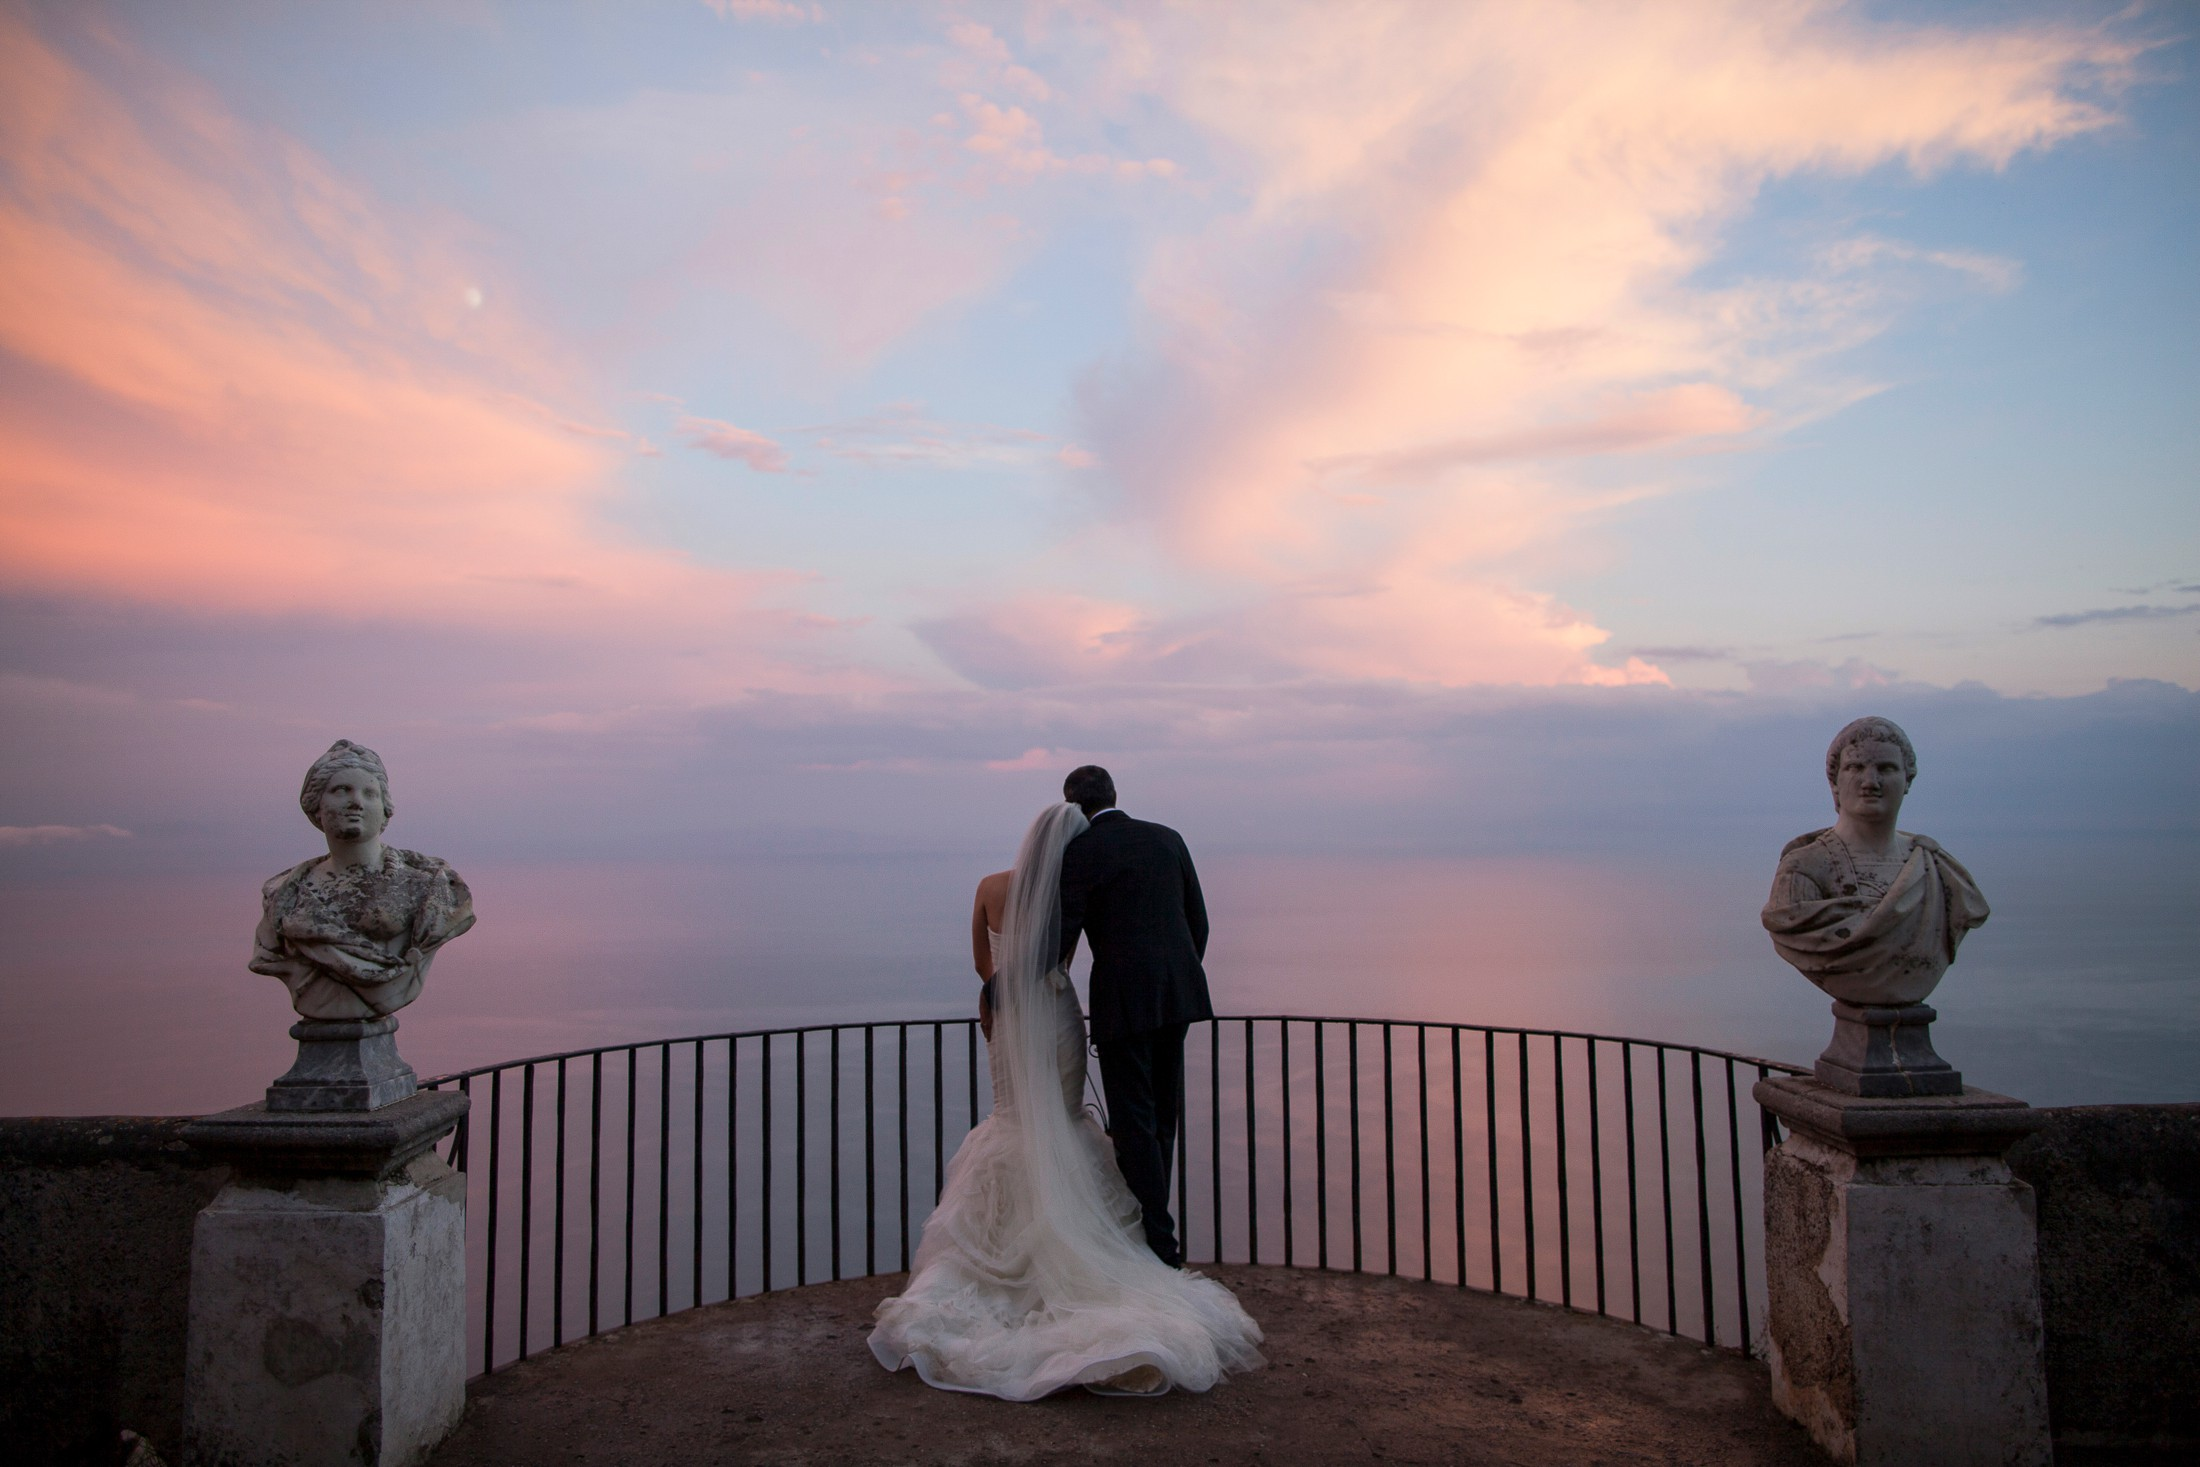 the bride and the groom on the infinity terrace at villa cimbrone on sunset time